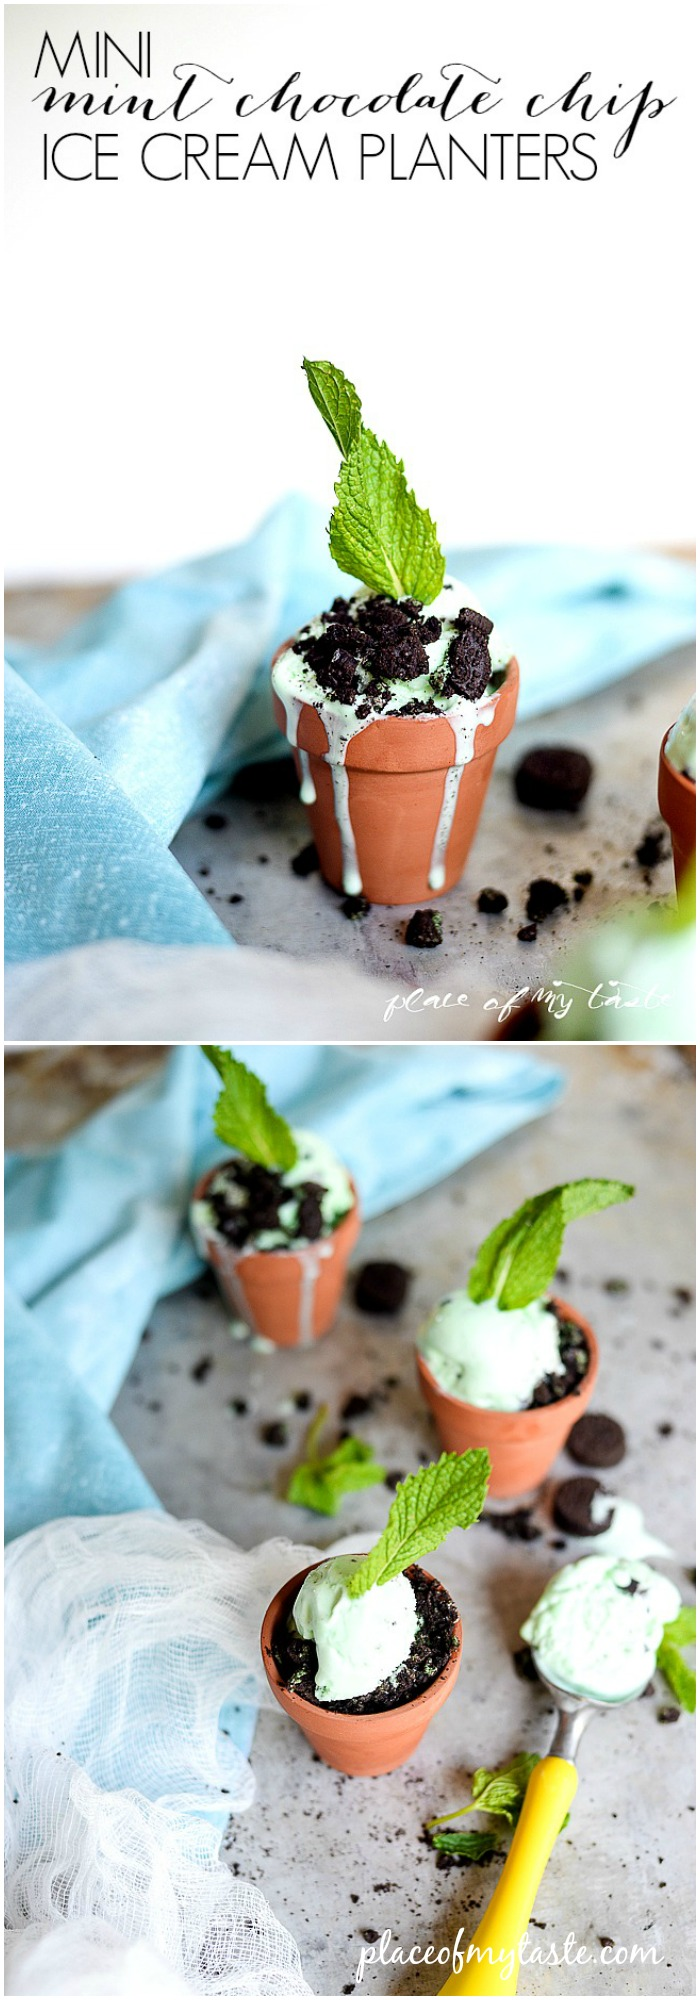 Dessert Recipes - Mini Mint Chocolate Chip Ice Cream Planters by lplaceofmytaste.com  ...Pin it now and make them later!